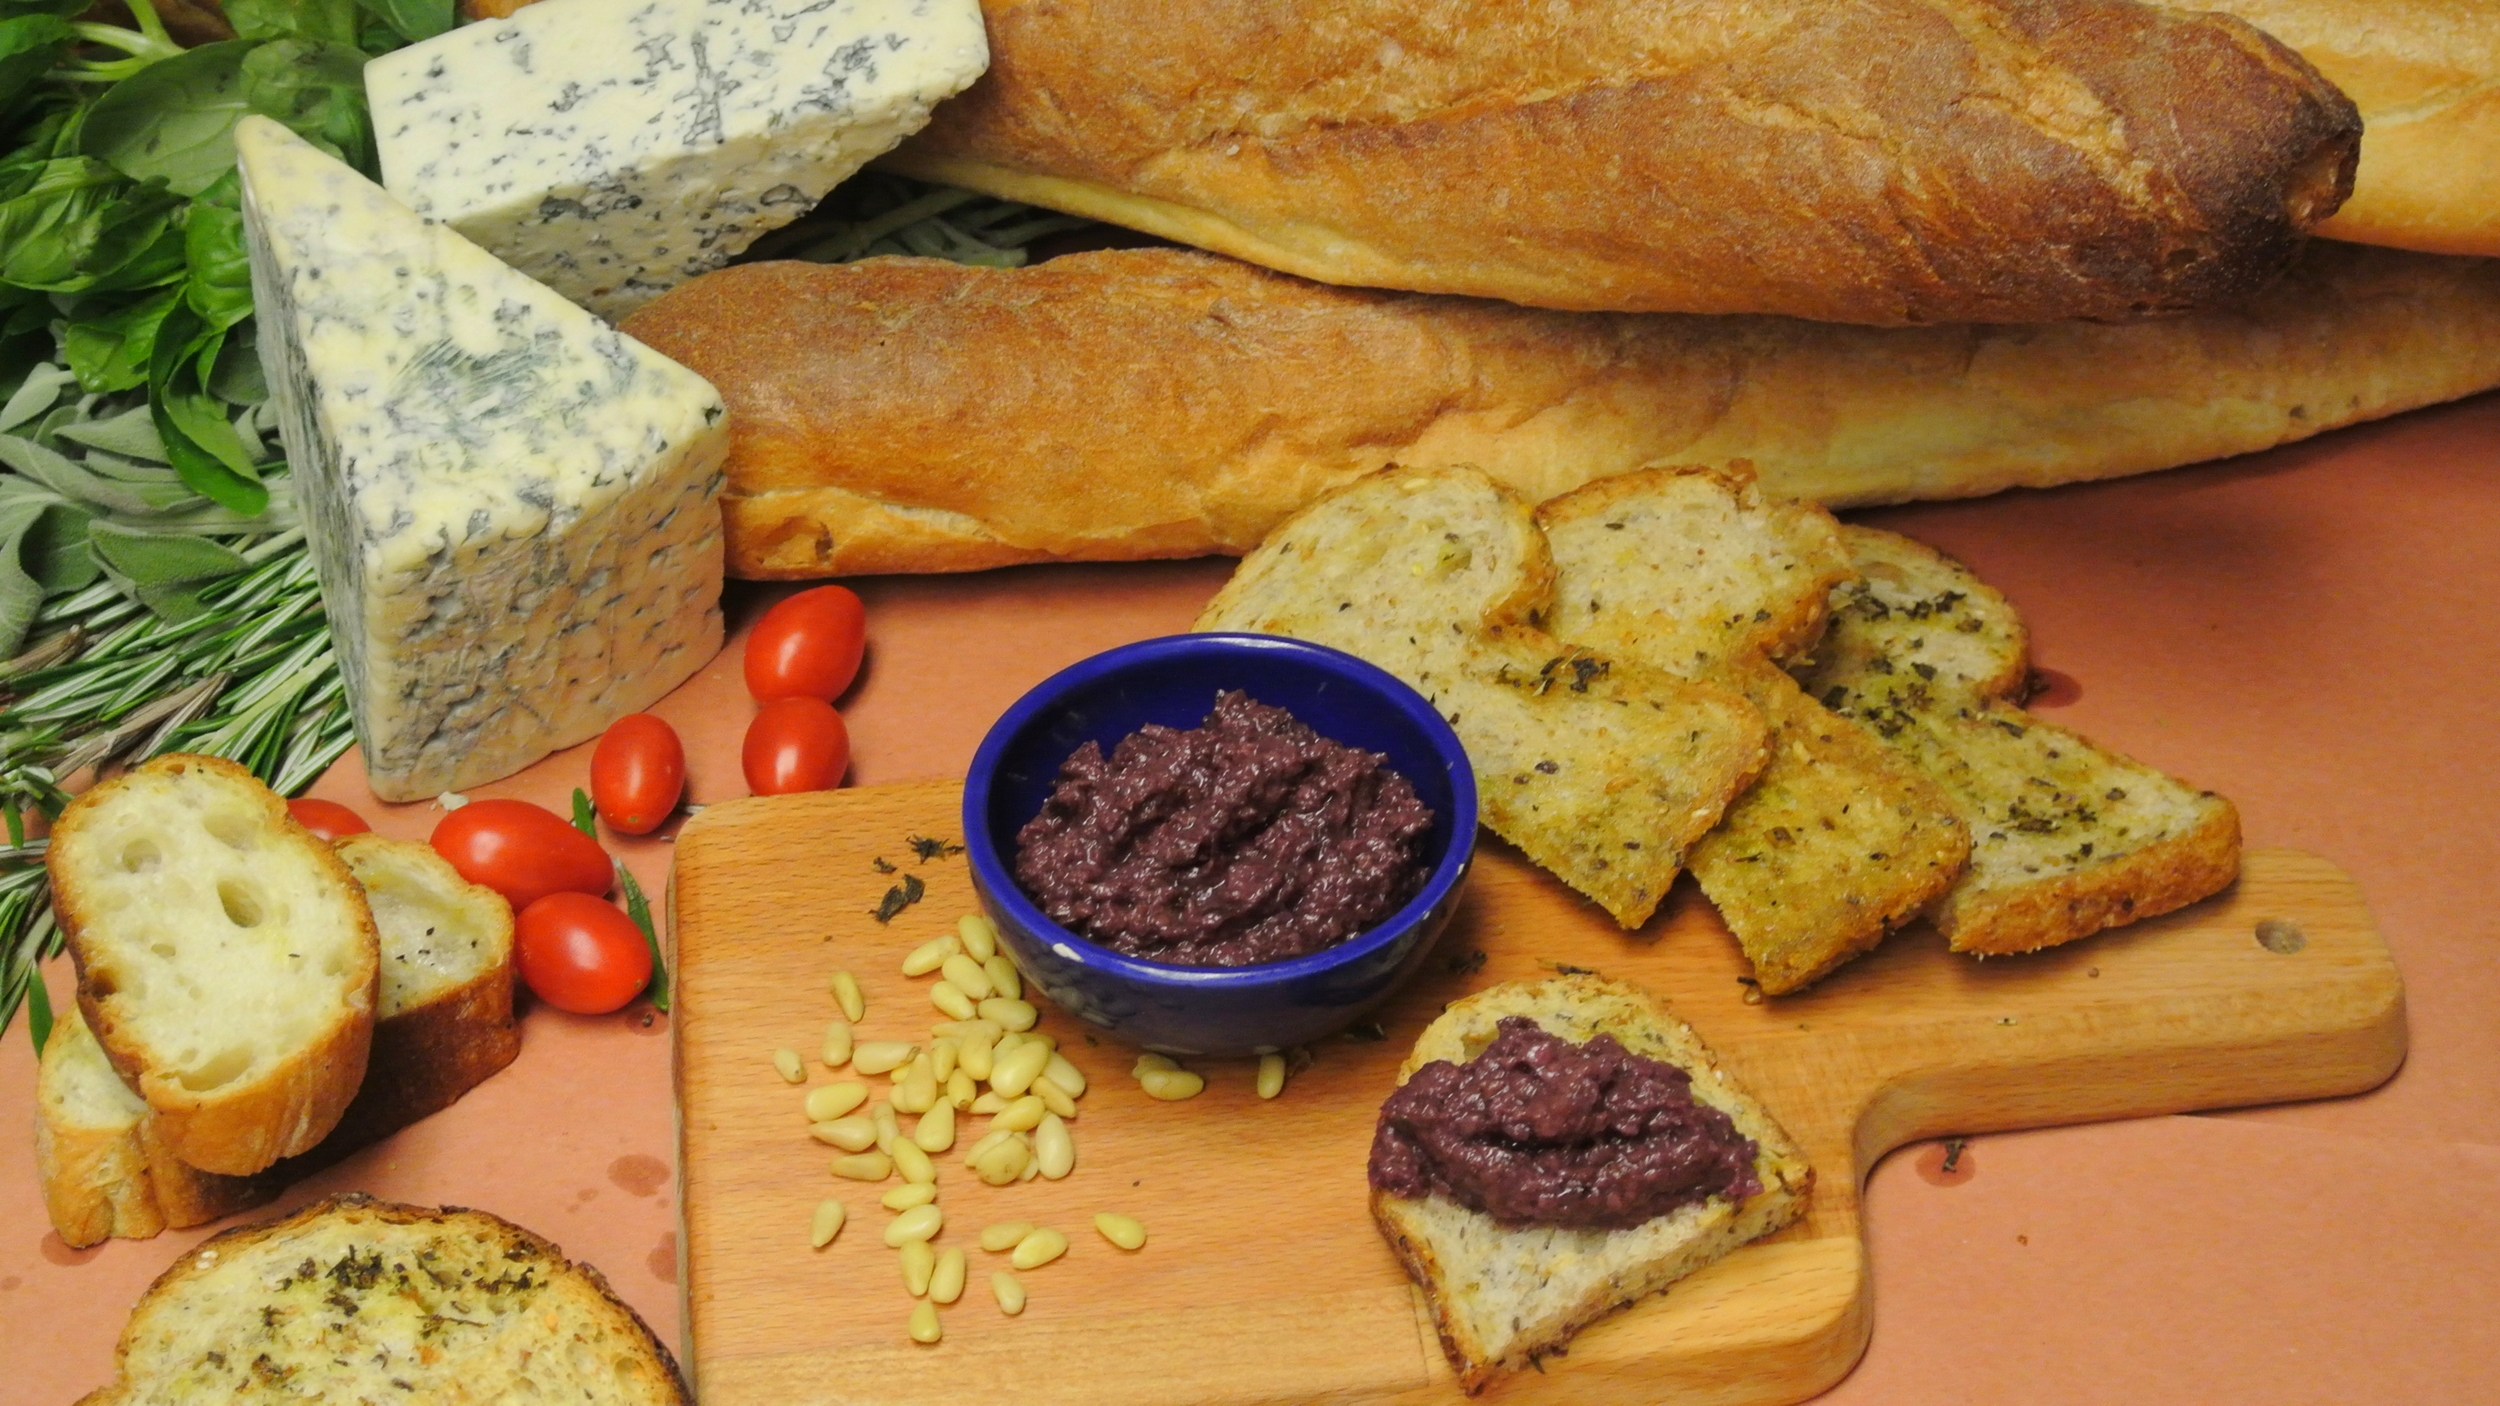 olive tapenade made with kalamata olives and Conte extra virgin olive oil